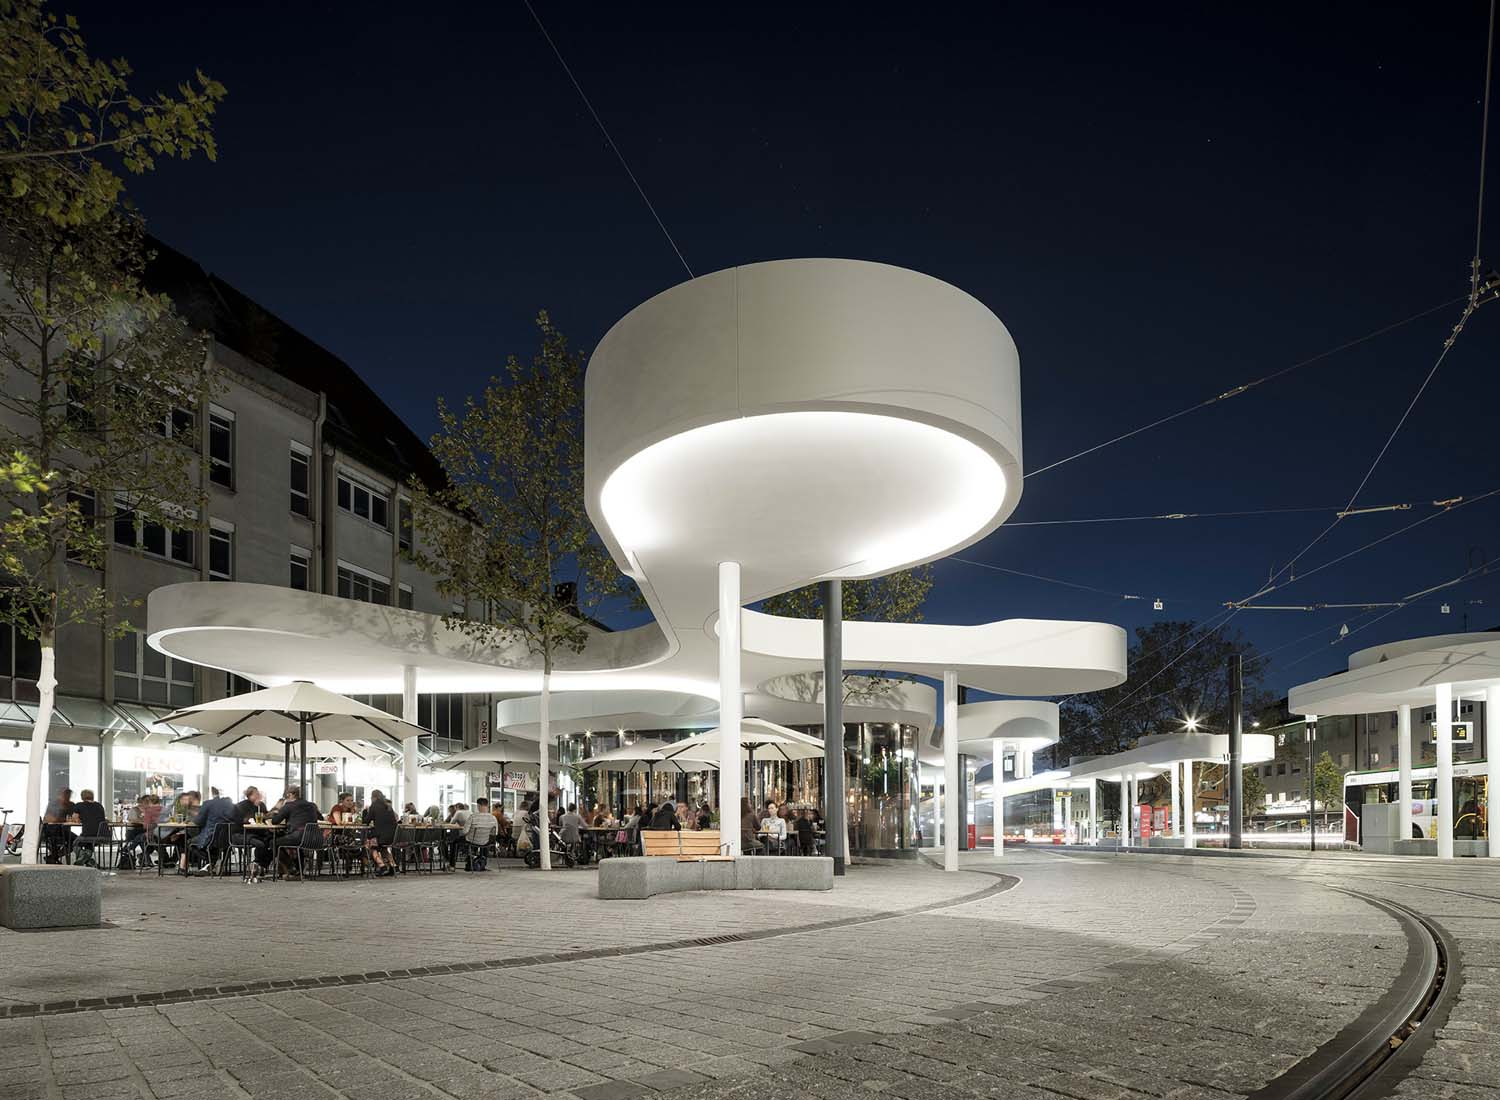 Perspective from East with Restaurant Use at Nighttime with Lighting David Franck